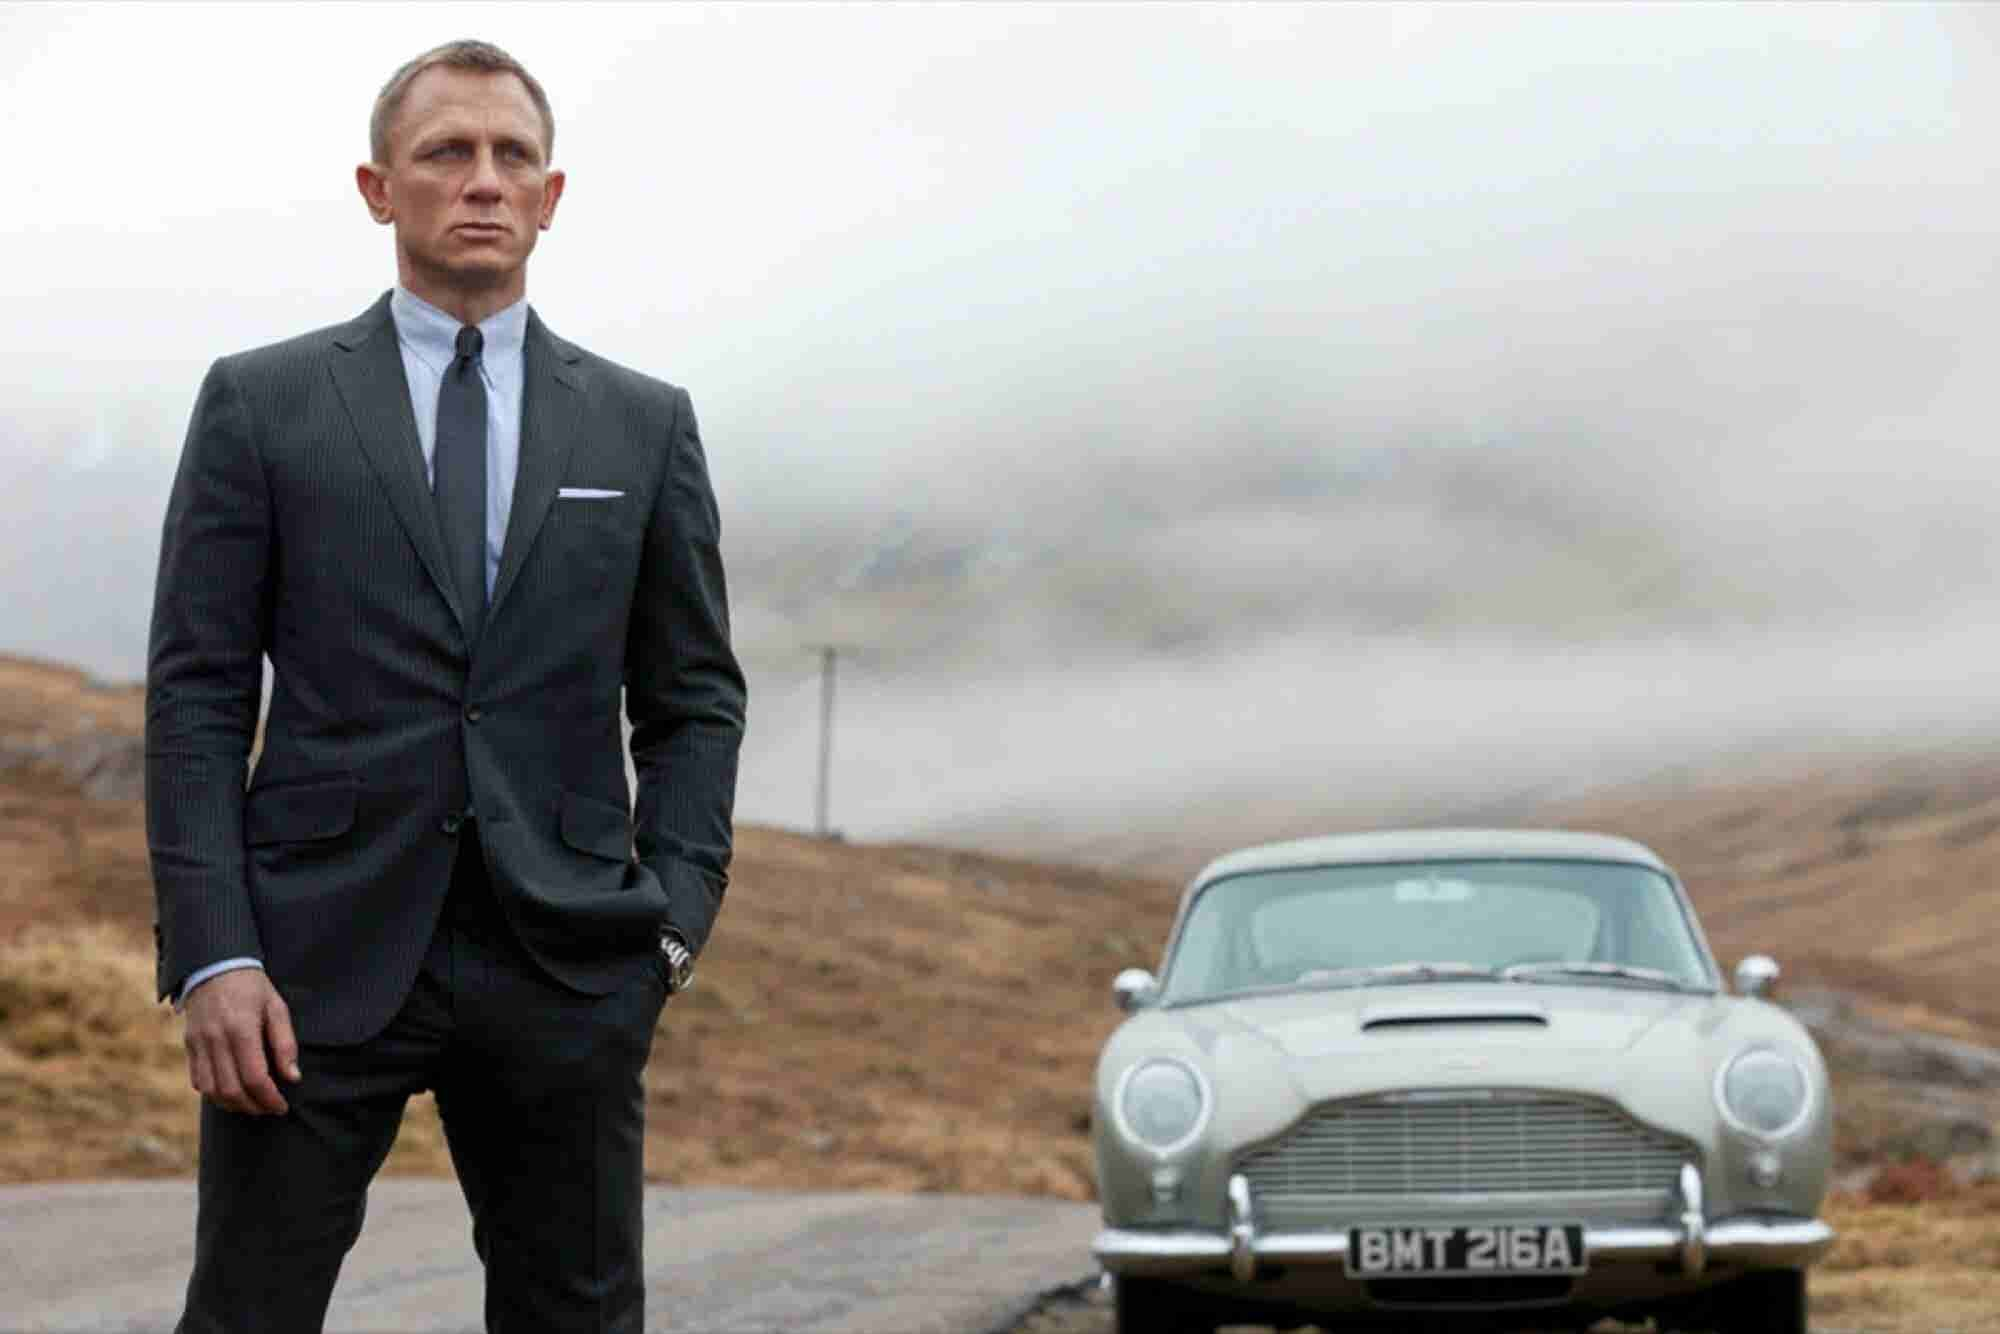 Want James Bond to Use Your Product? Hand Over $5 Million and Be 'the Best.'